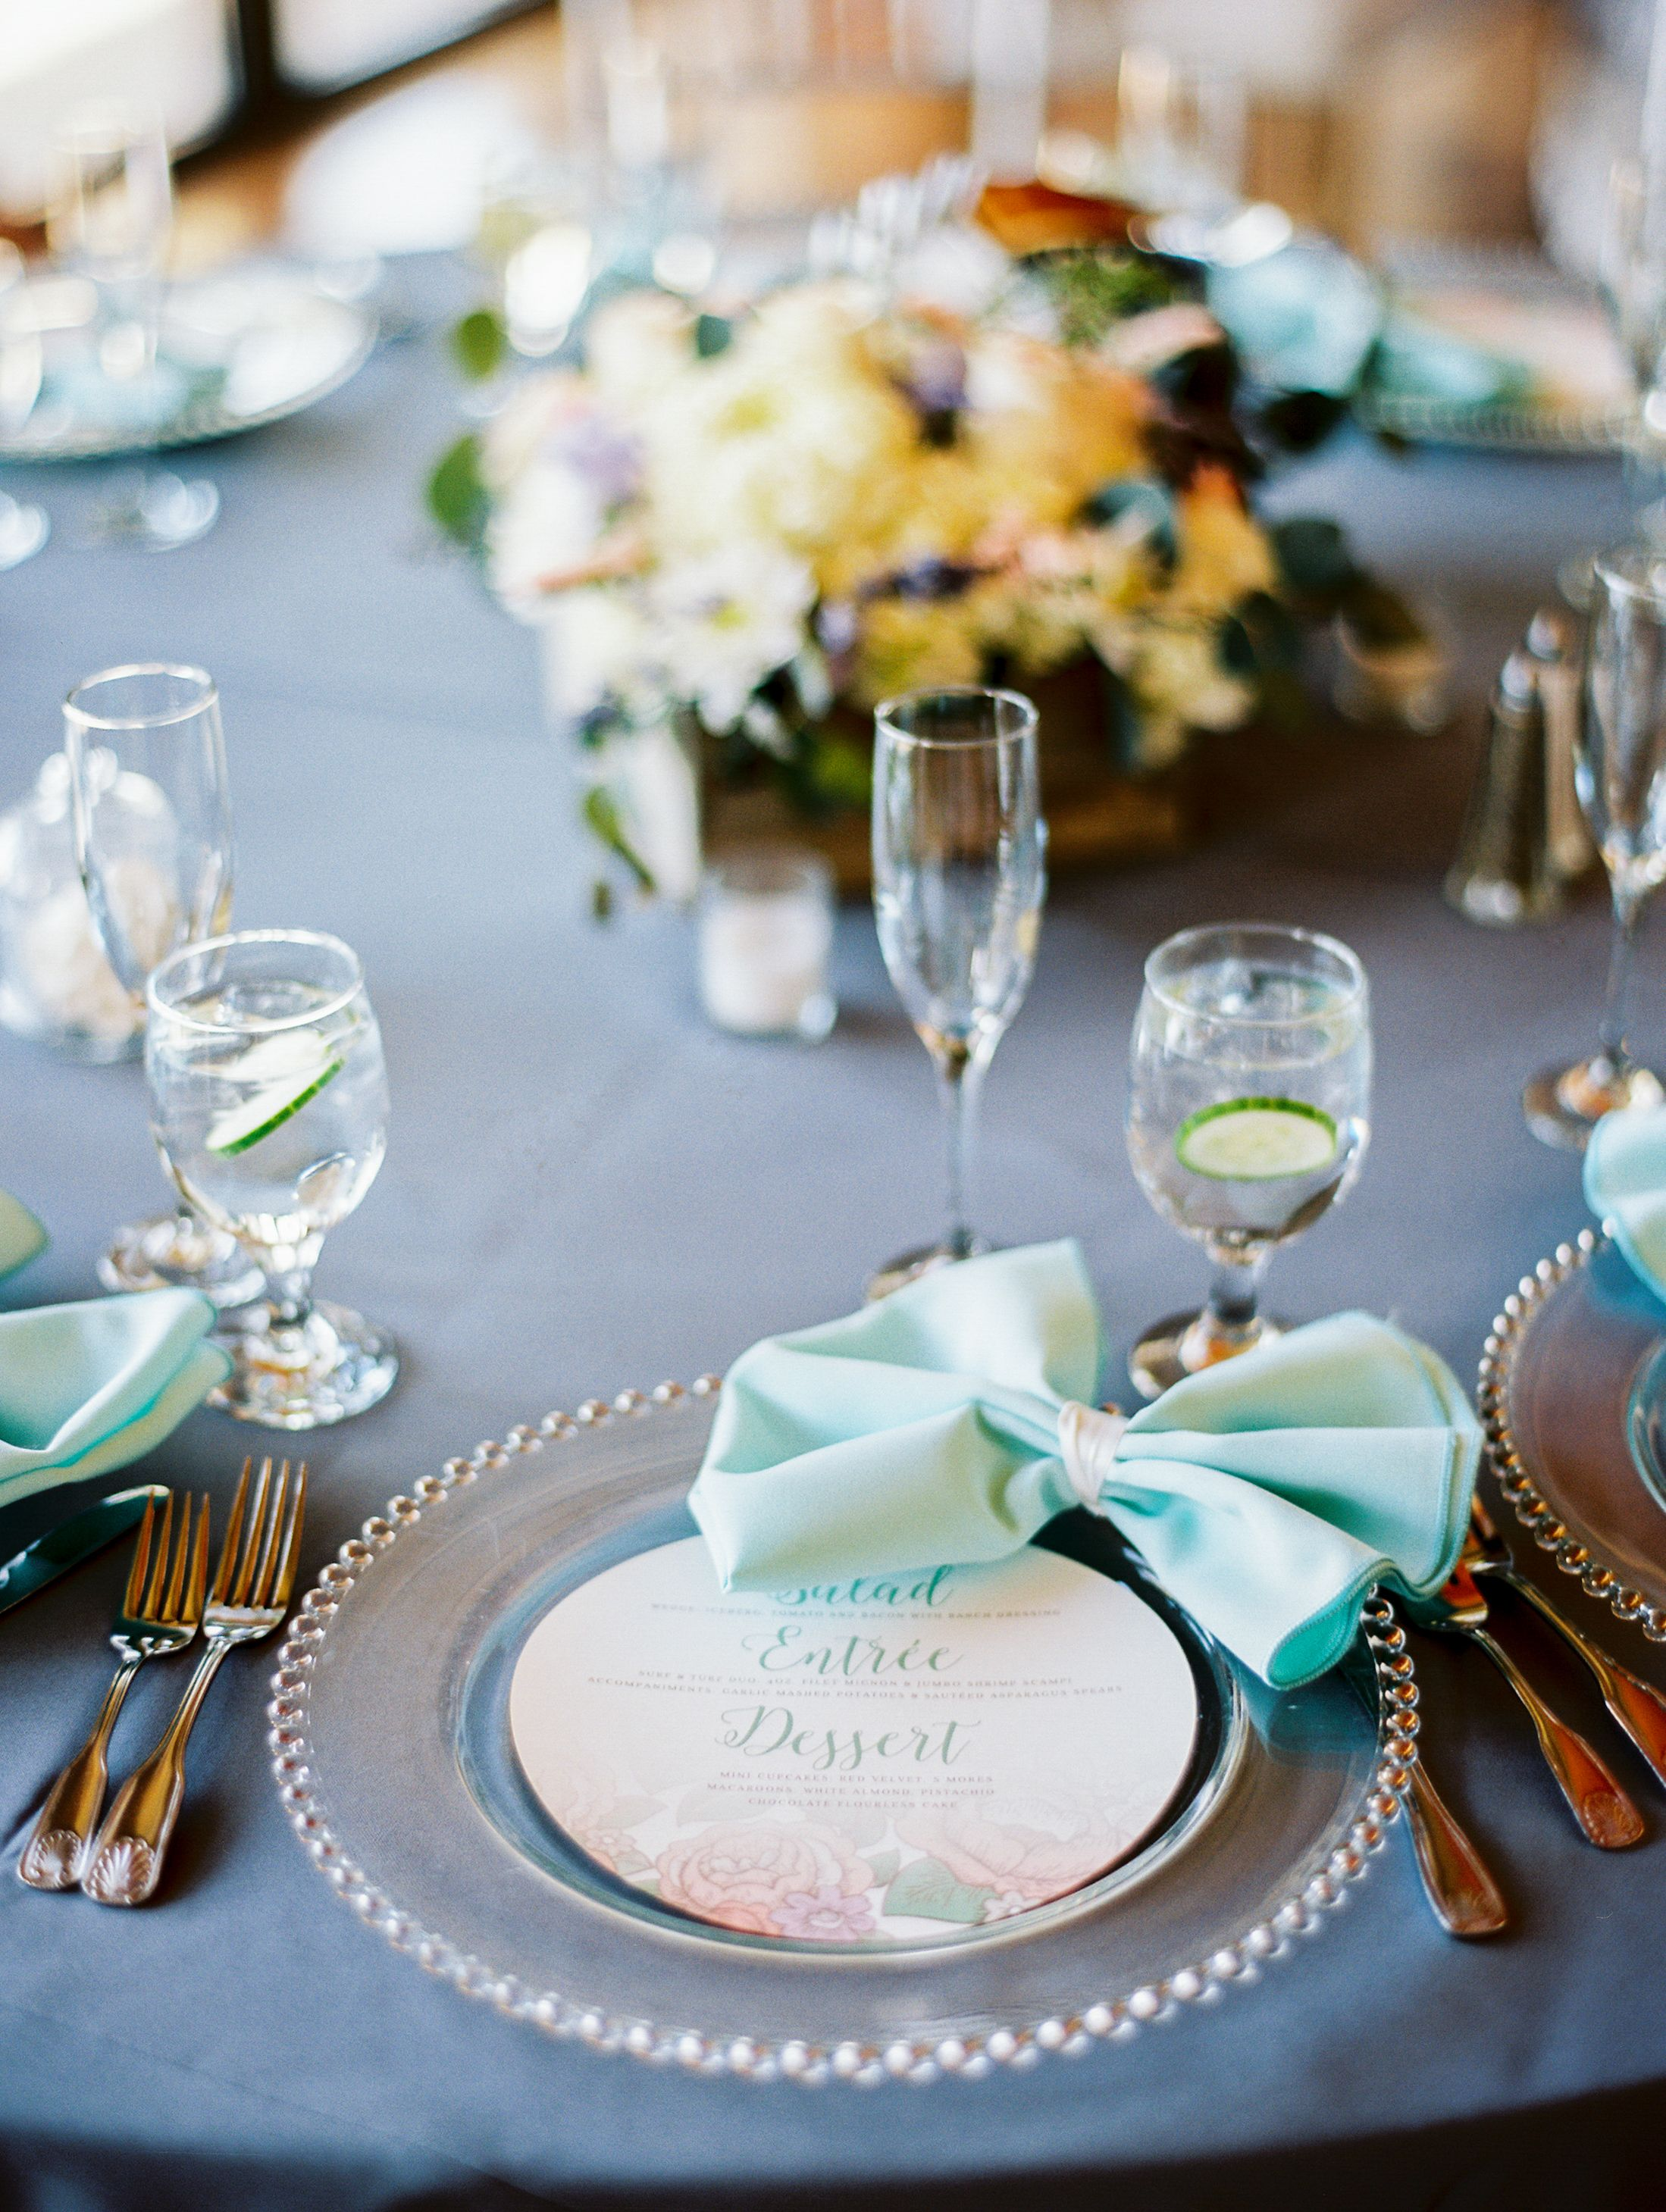 Place Setting with Napkin Bows | photography by http://rachel-solomon.com/